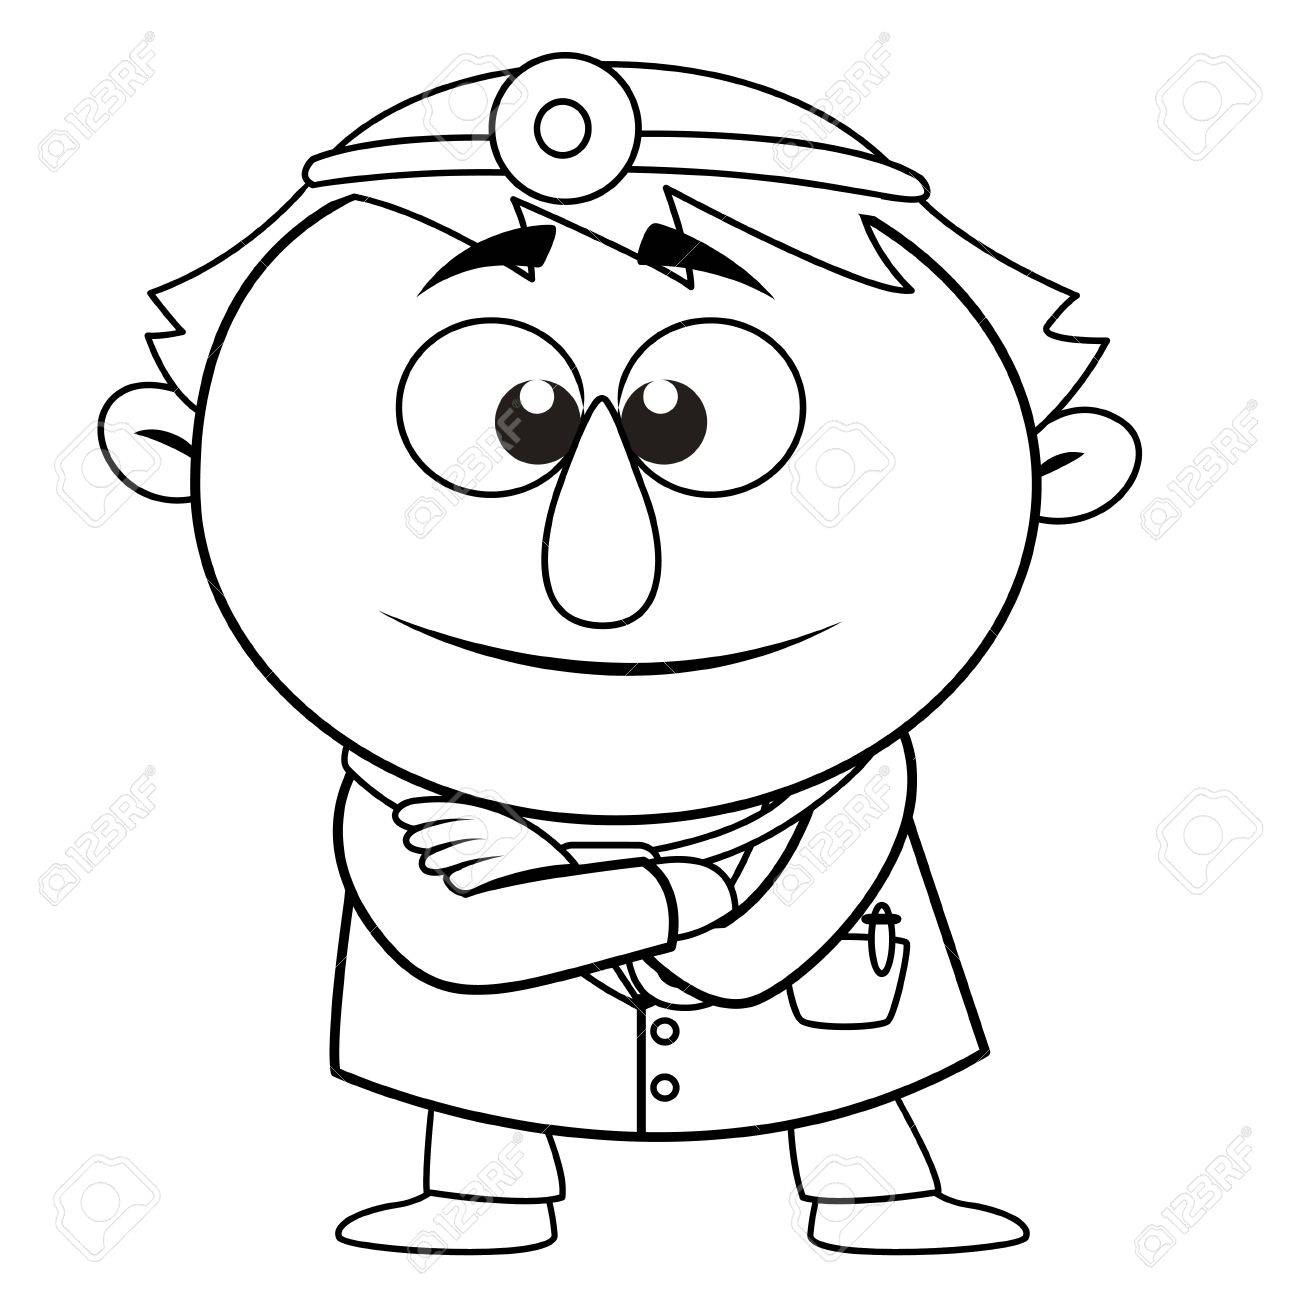 black and white coloring page outline of a doctor vector royalty